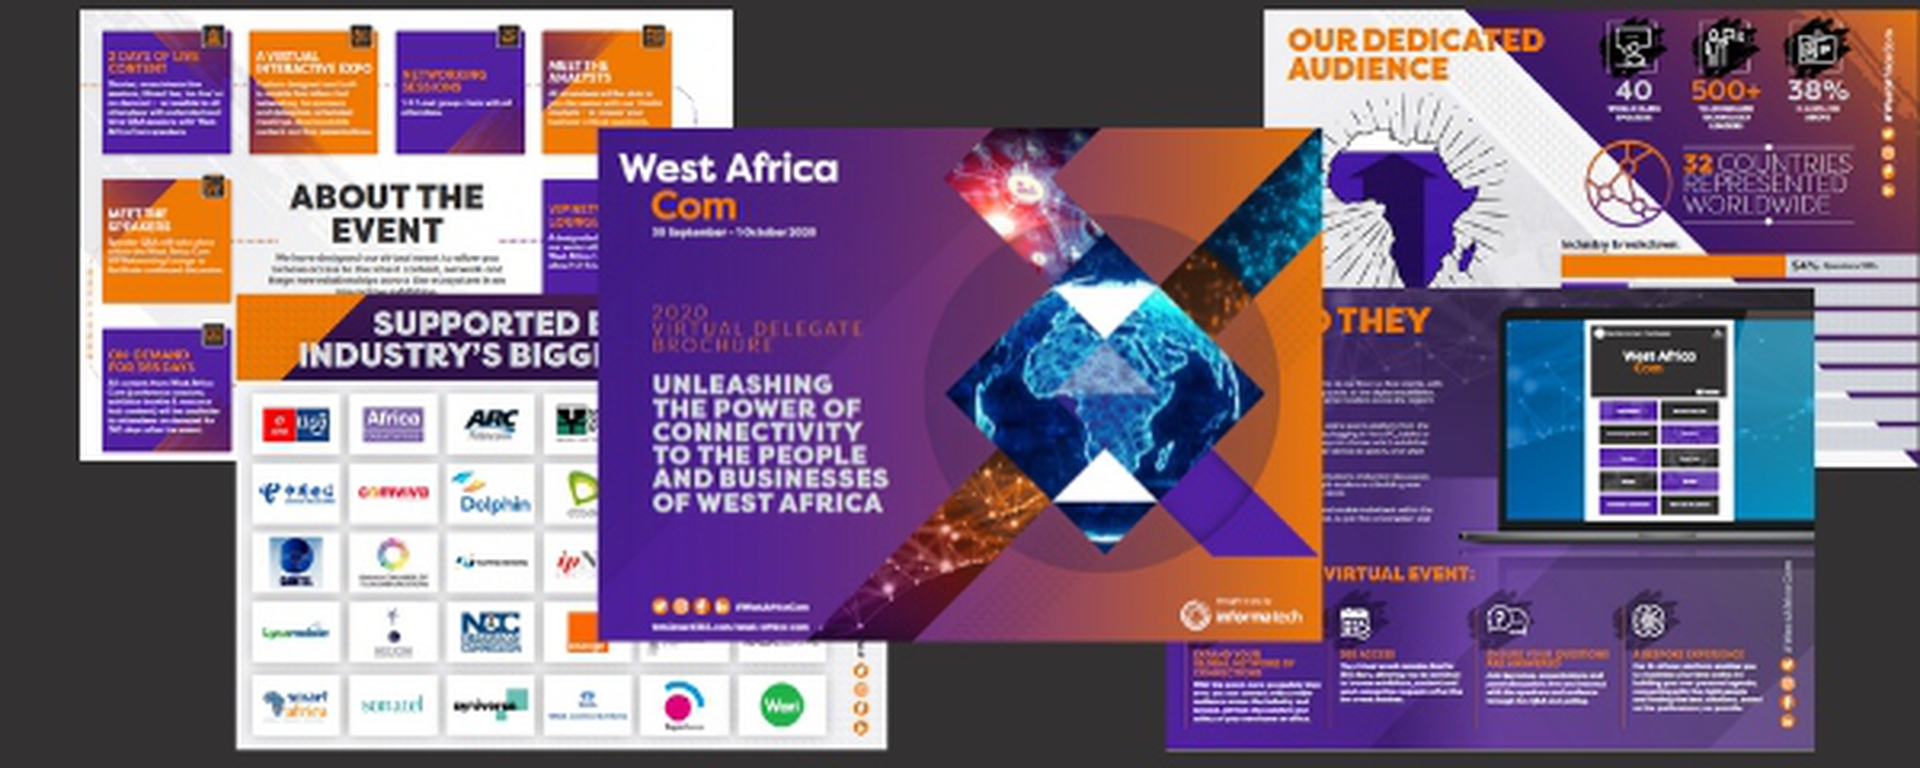 Informa Tech - West Africa Com 2020 Movemeback African event cover image